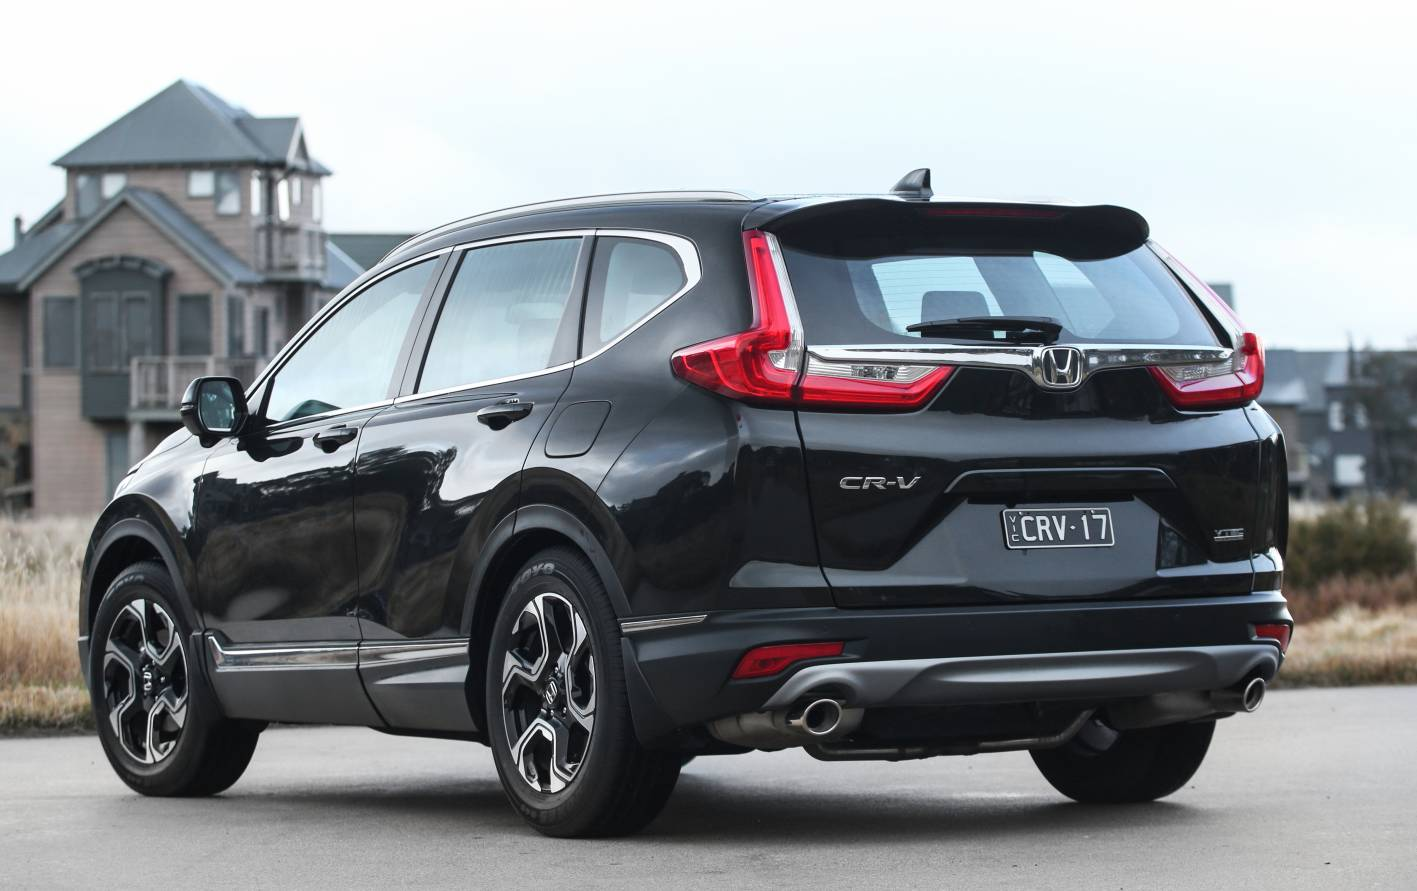 Crv 2017 Review >> 2018 Honda CR-V pricing and specification confirmed - ForceGT.com